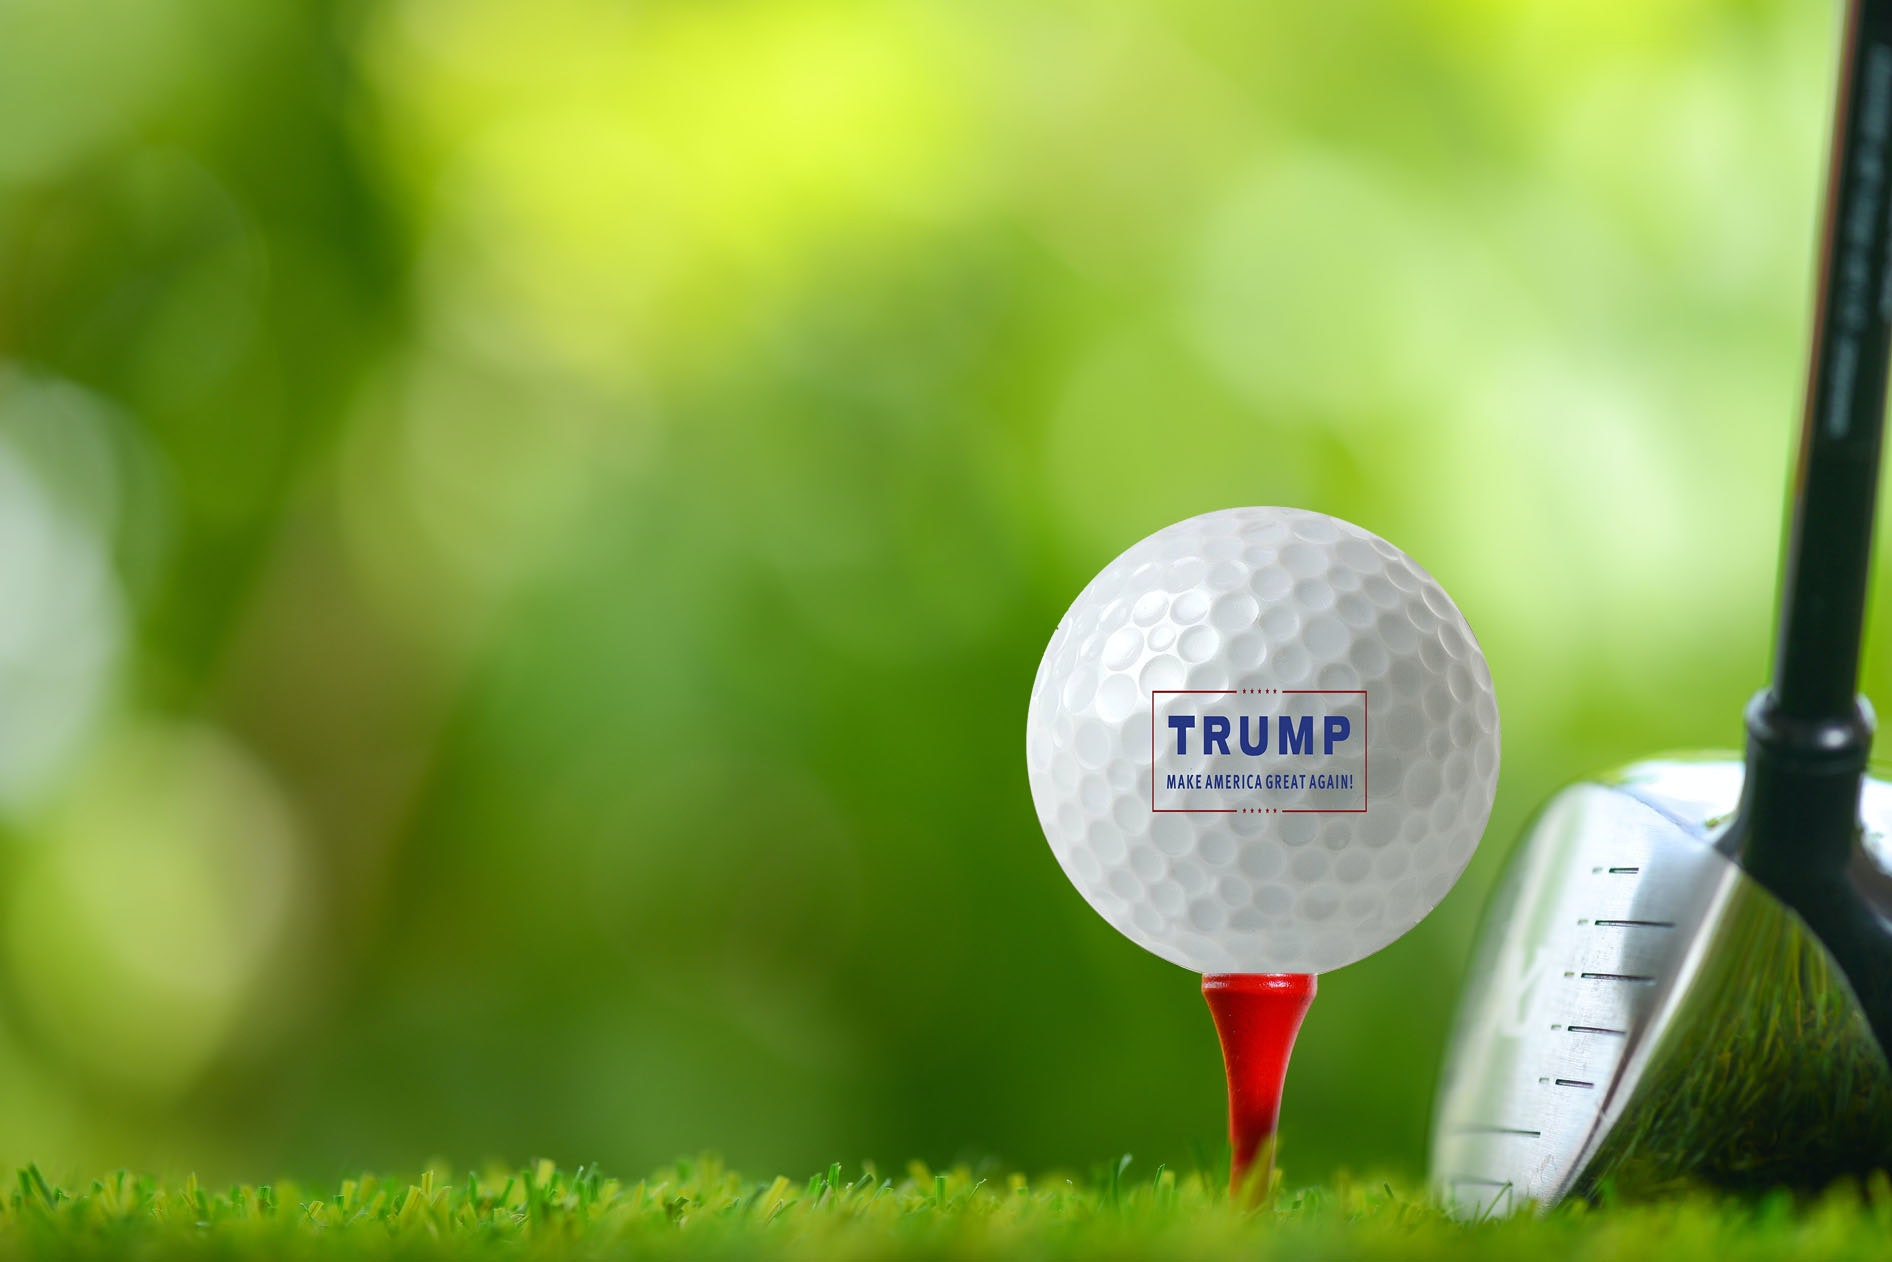 These collectible golf balls for when you join the president on the links